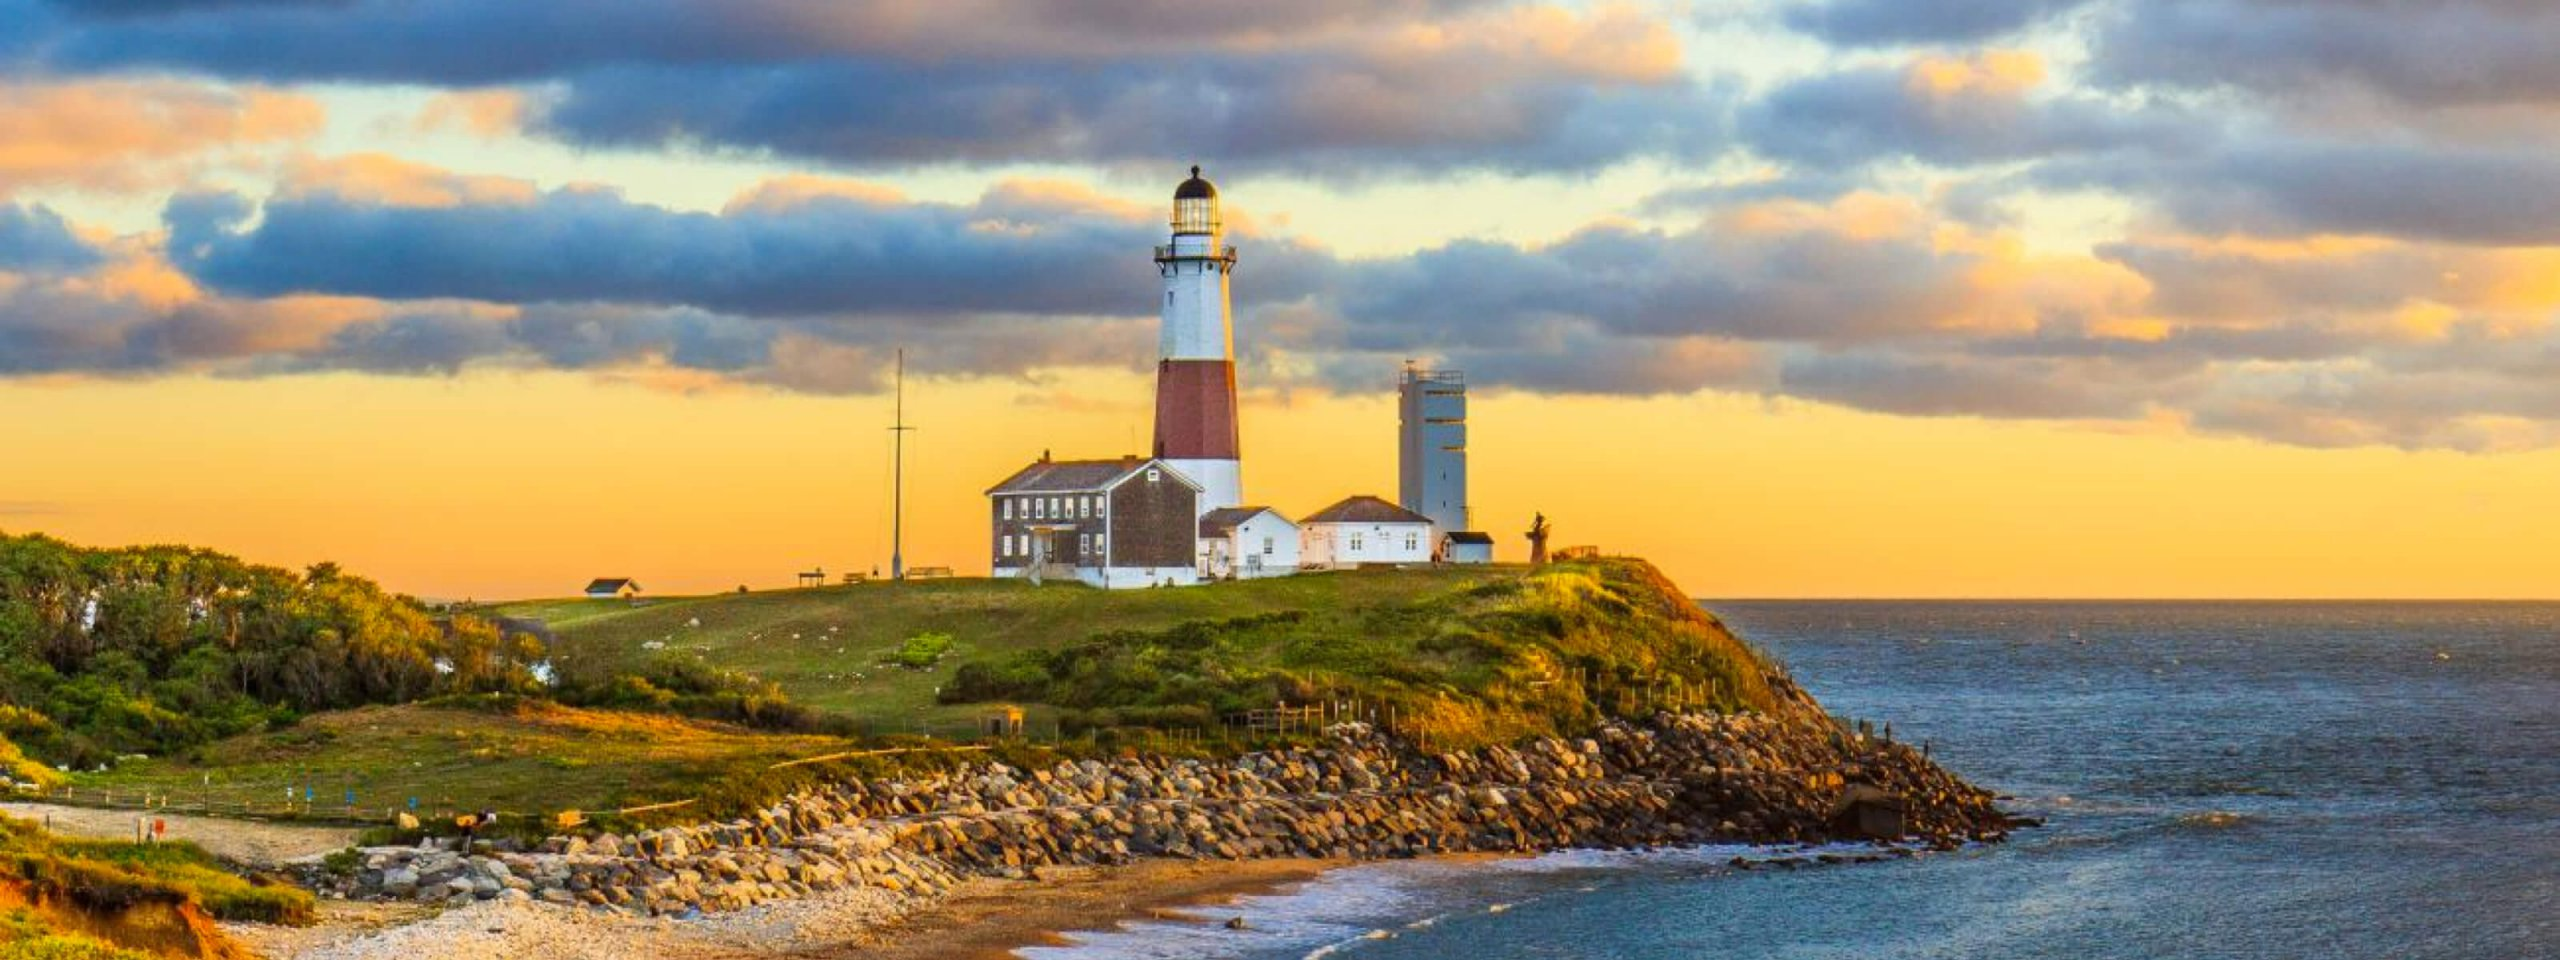 YachtLife's Suggested 7-day Itinerary - Montauk